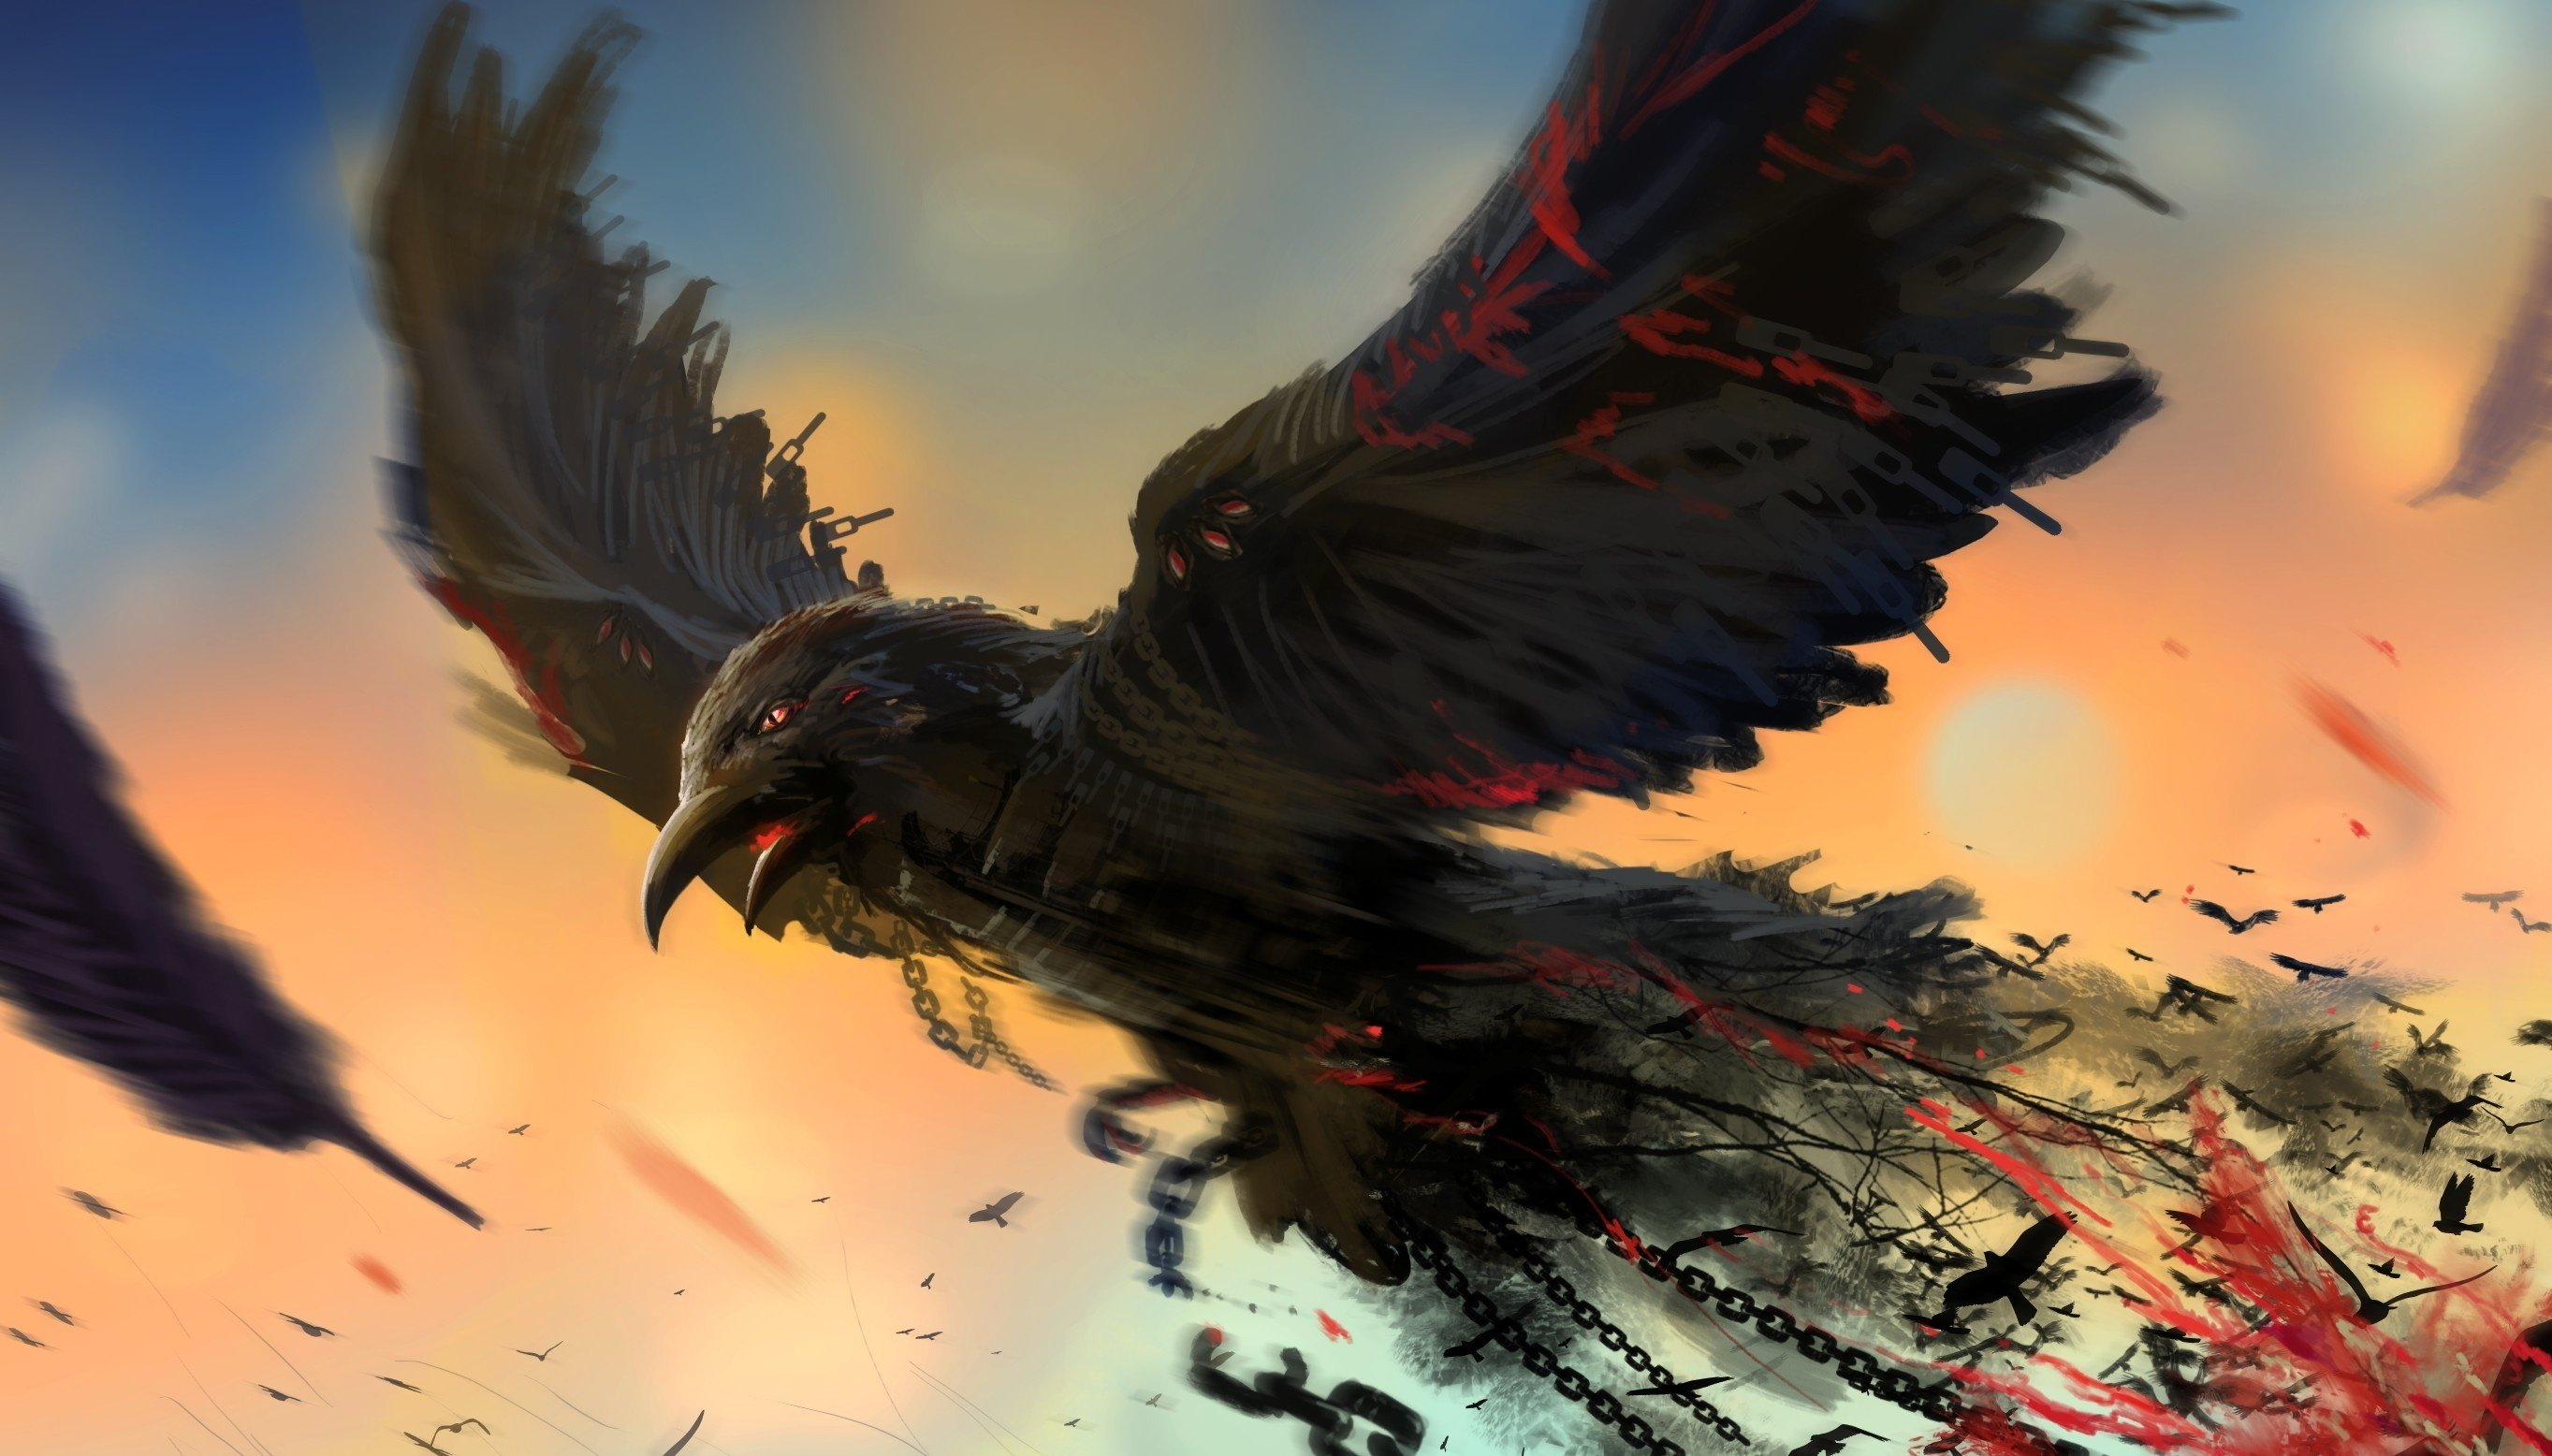 2727x1556 - Raven Wallpapers 6